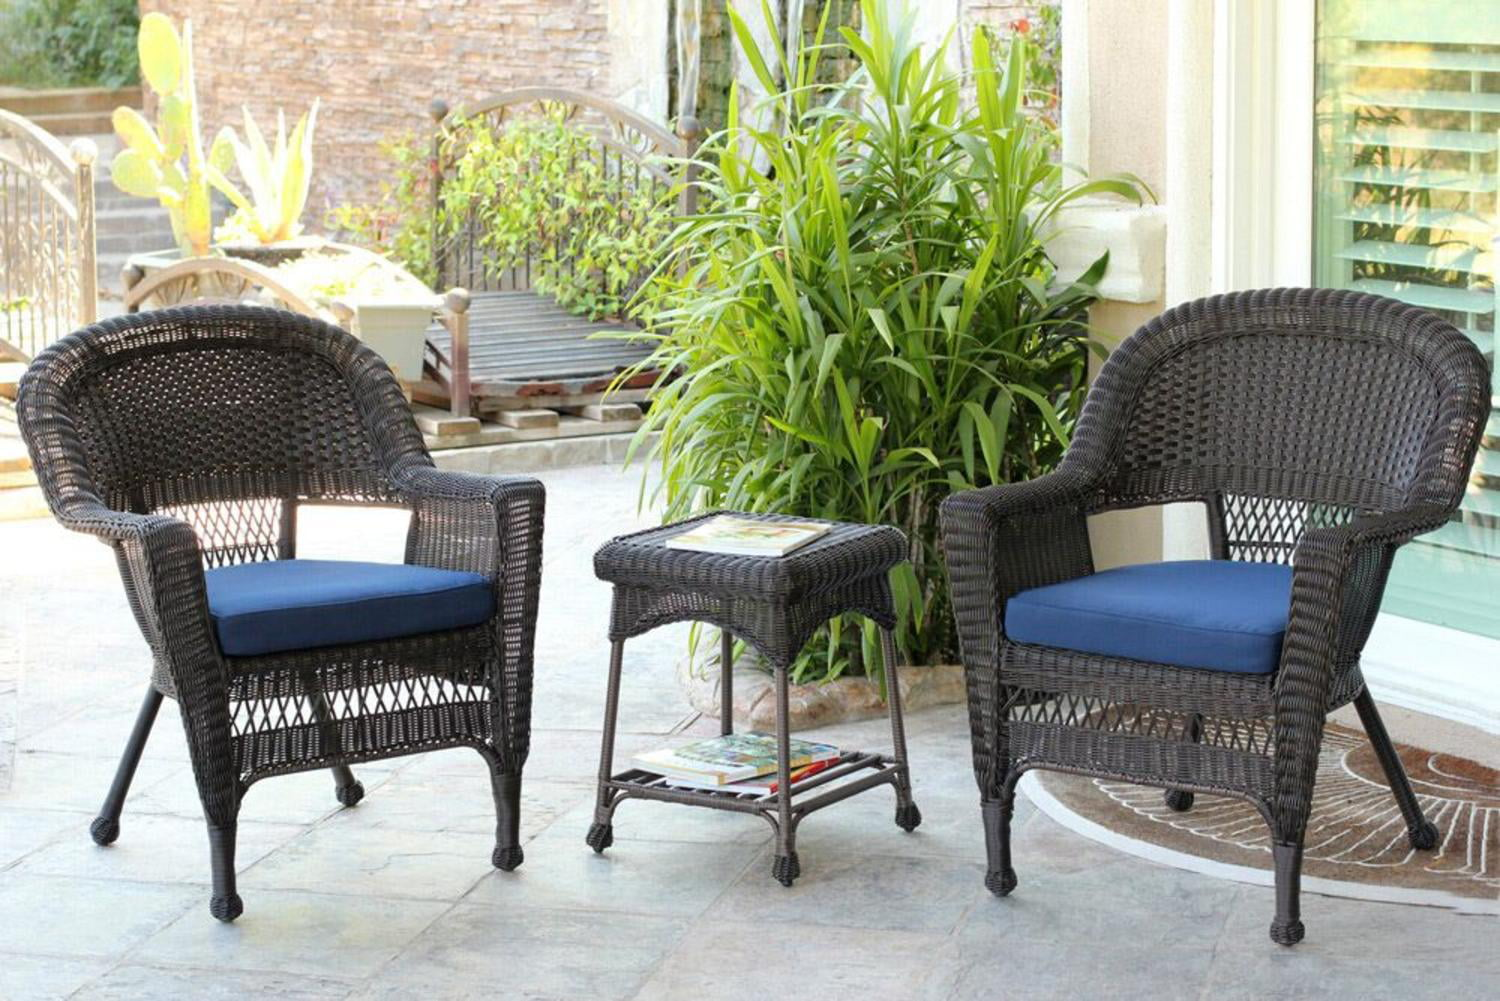 Best Choice Products 4pc Outdoor Patio Garden Furniture Wicker Rattan Sofa Set Black - Walmart.com & Best Choice Products 4pc Outdoor Patio Garden Furniture Wicker ...